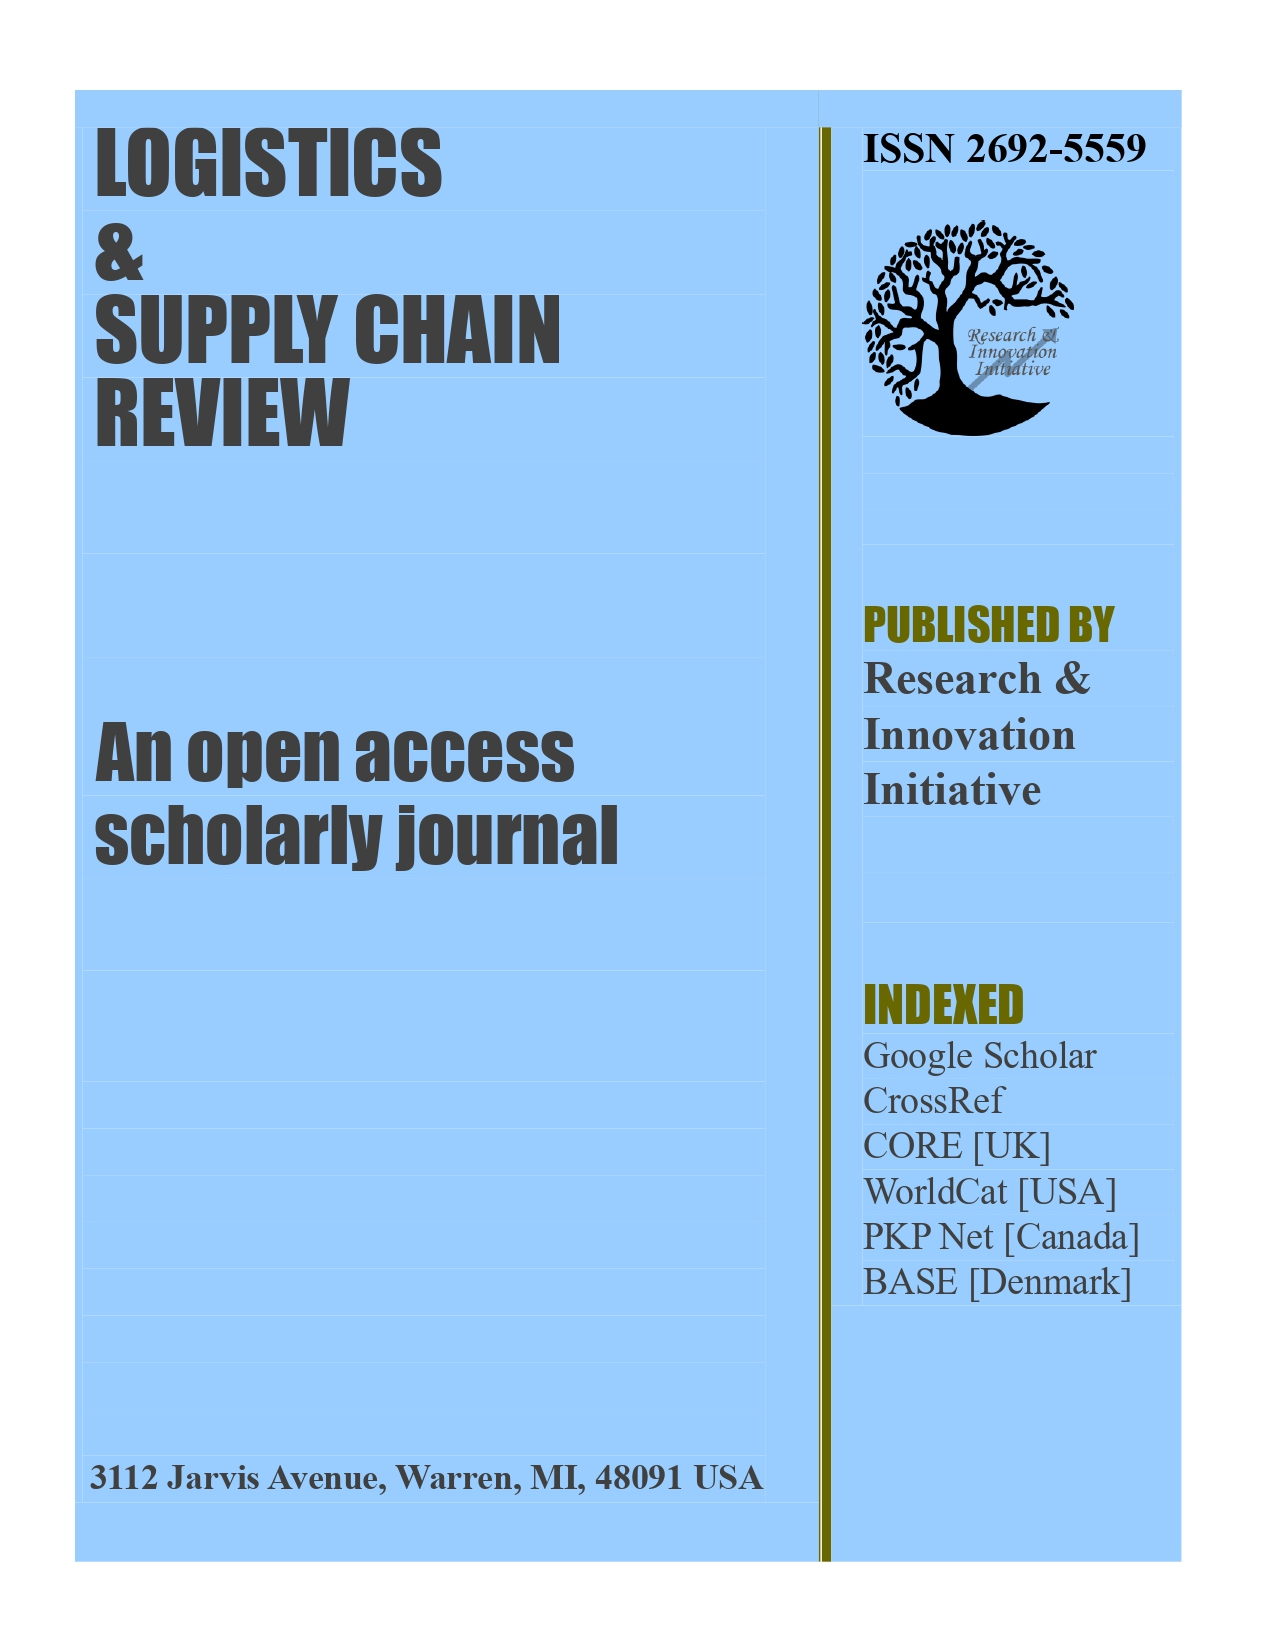 Logistics & Supply Chain Review